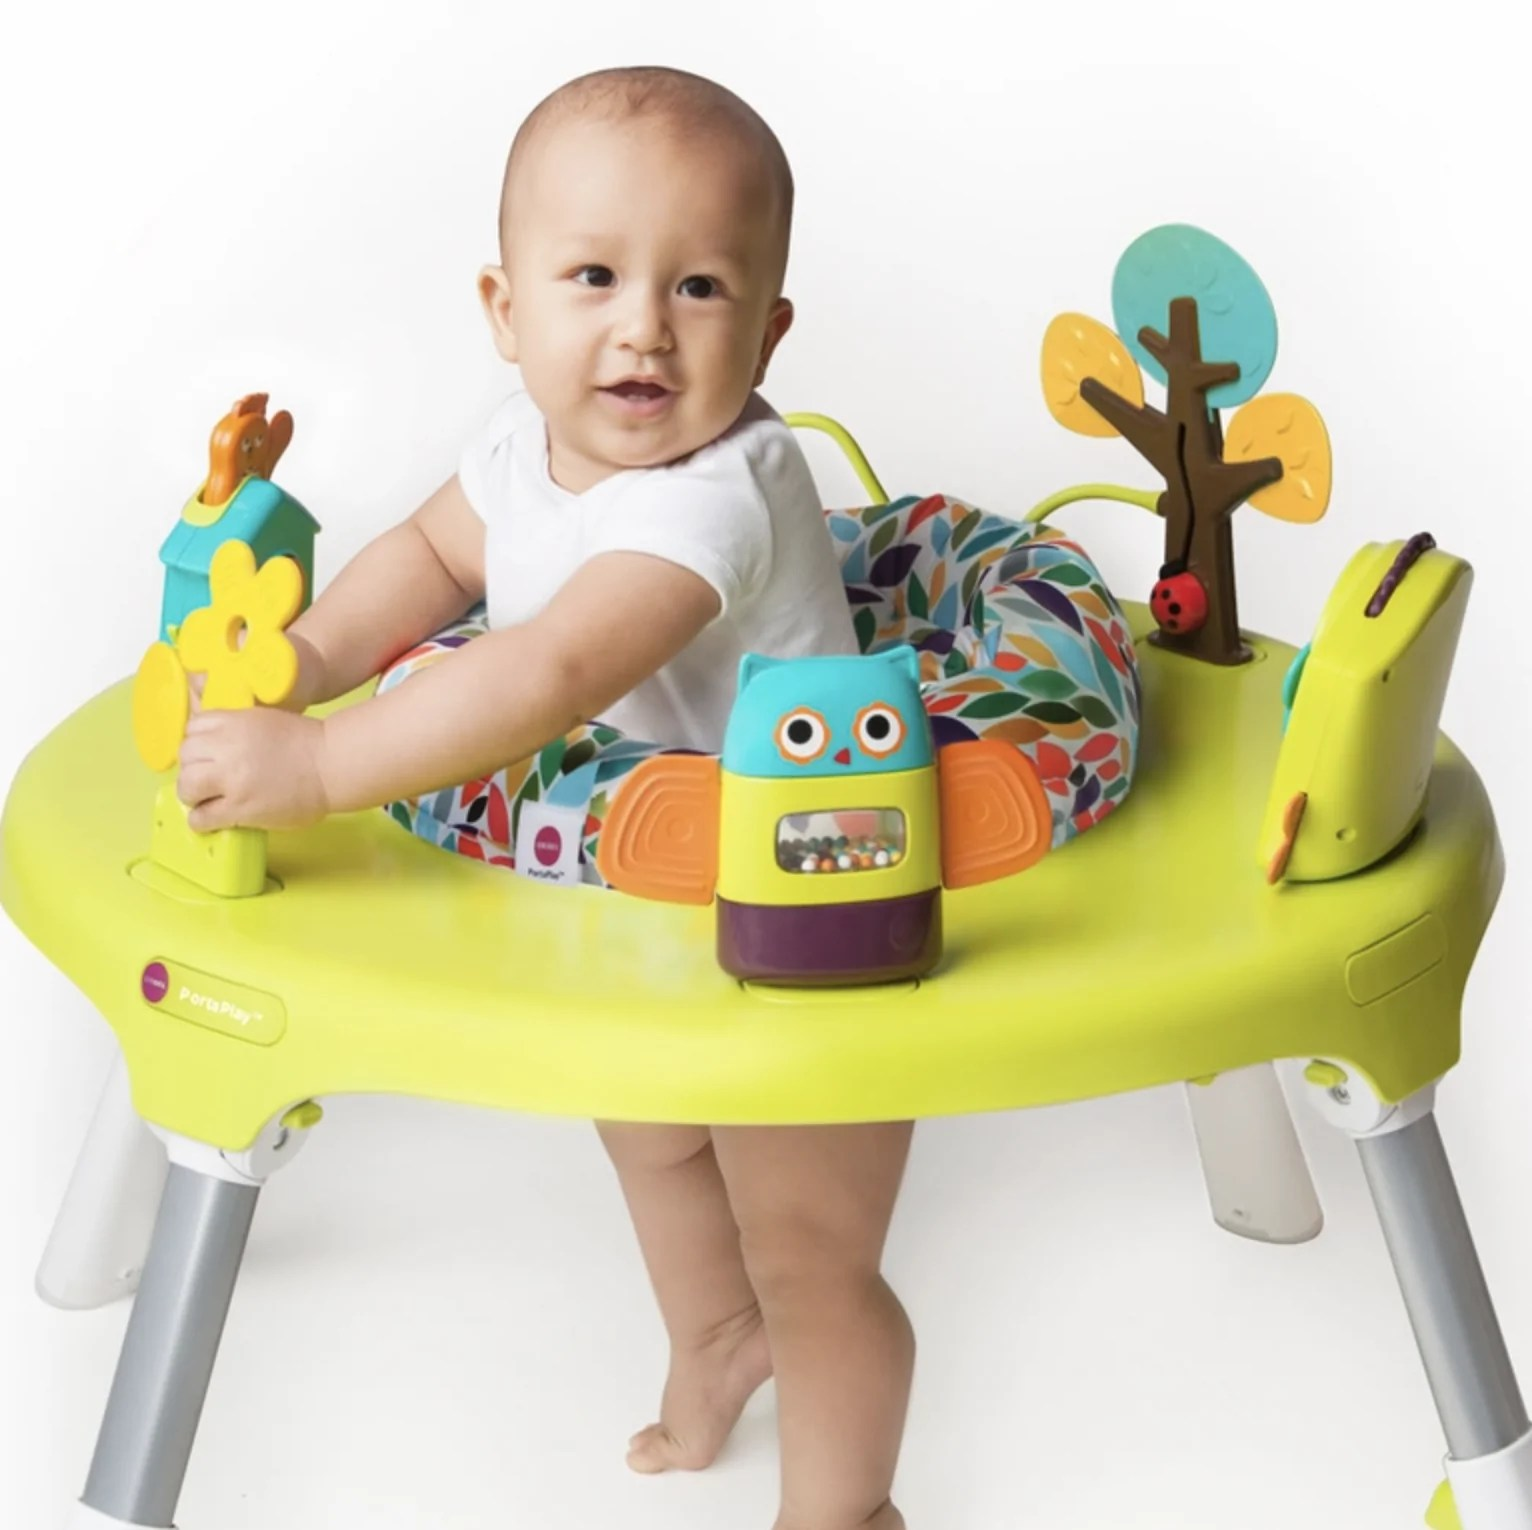 Baby Activity Center Oribel Portaplay 4 In 1 Foldable Activity Center